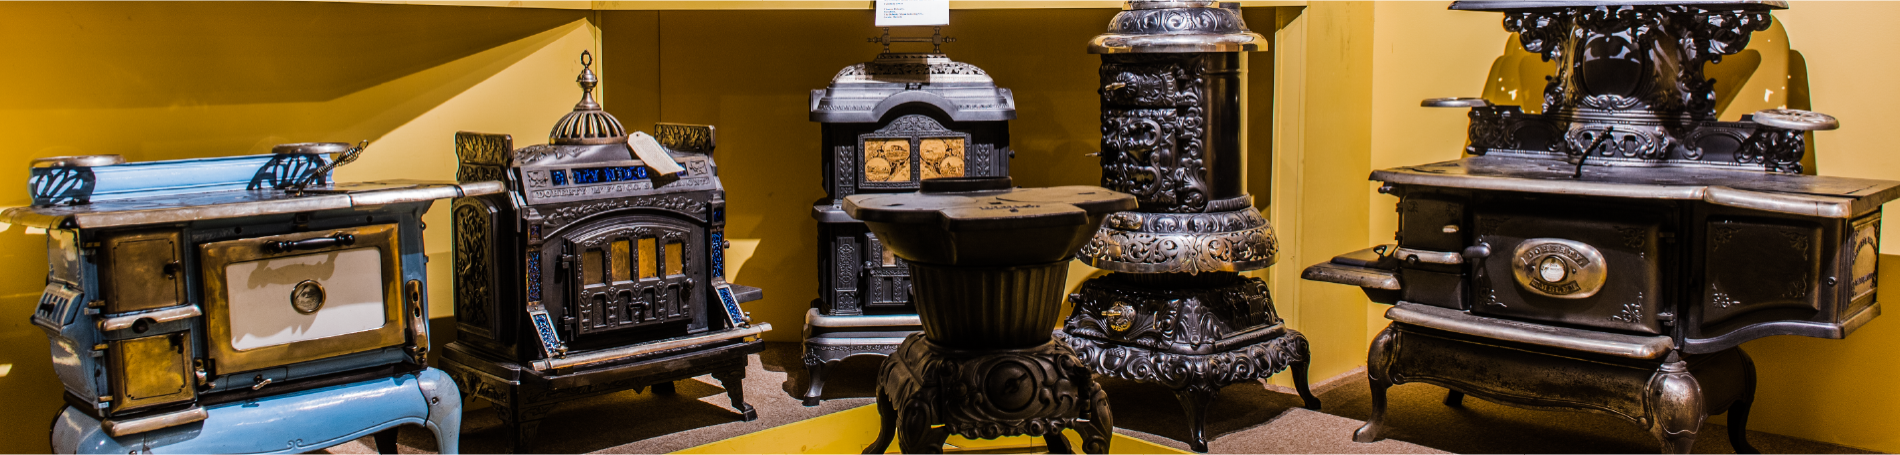 Doherty Stoves in Lambton Gallery